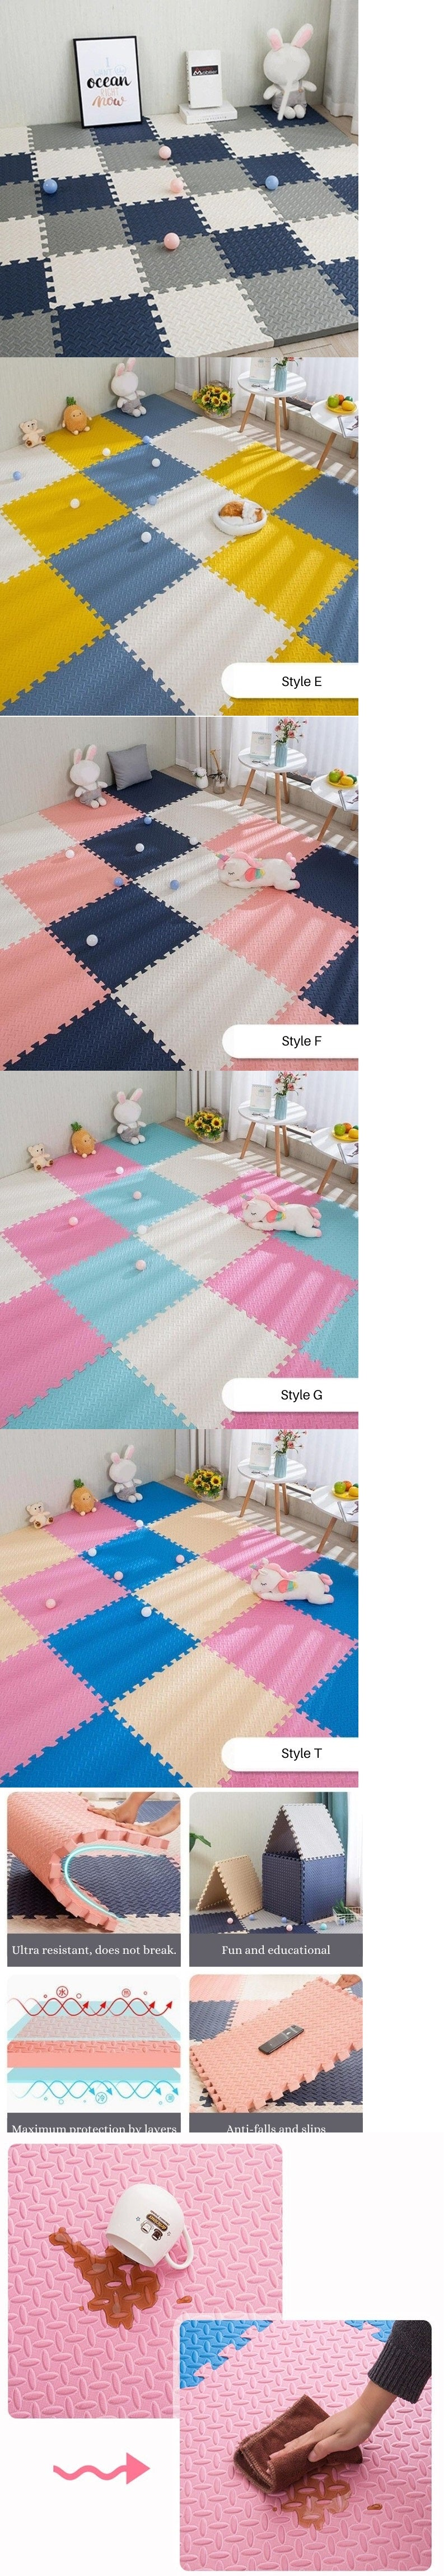 Kids rugs description and styles